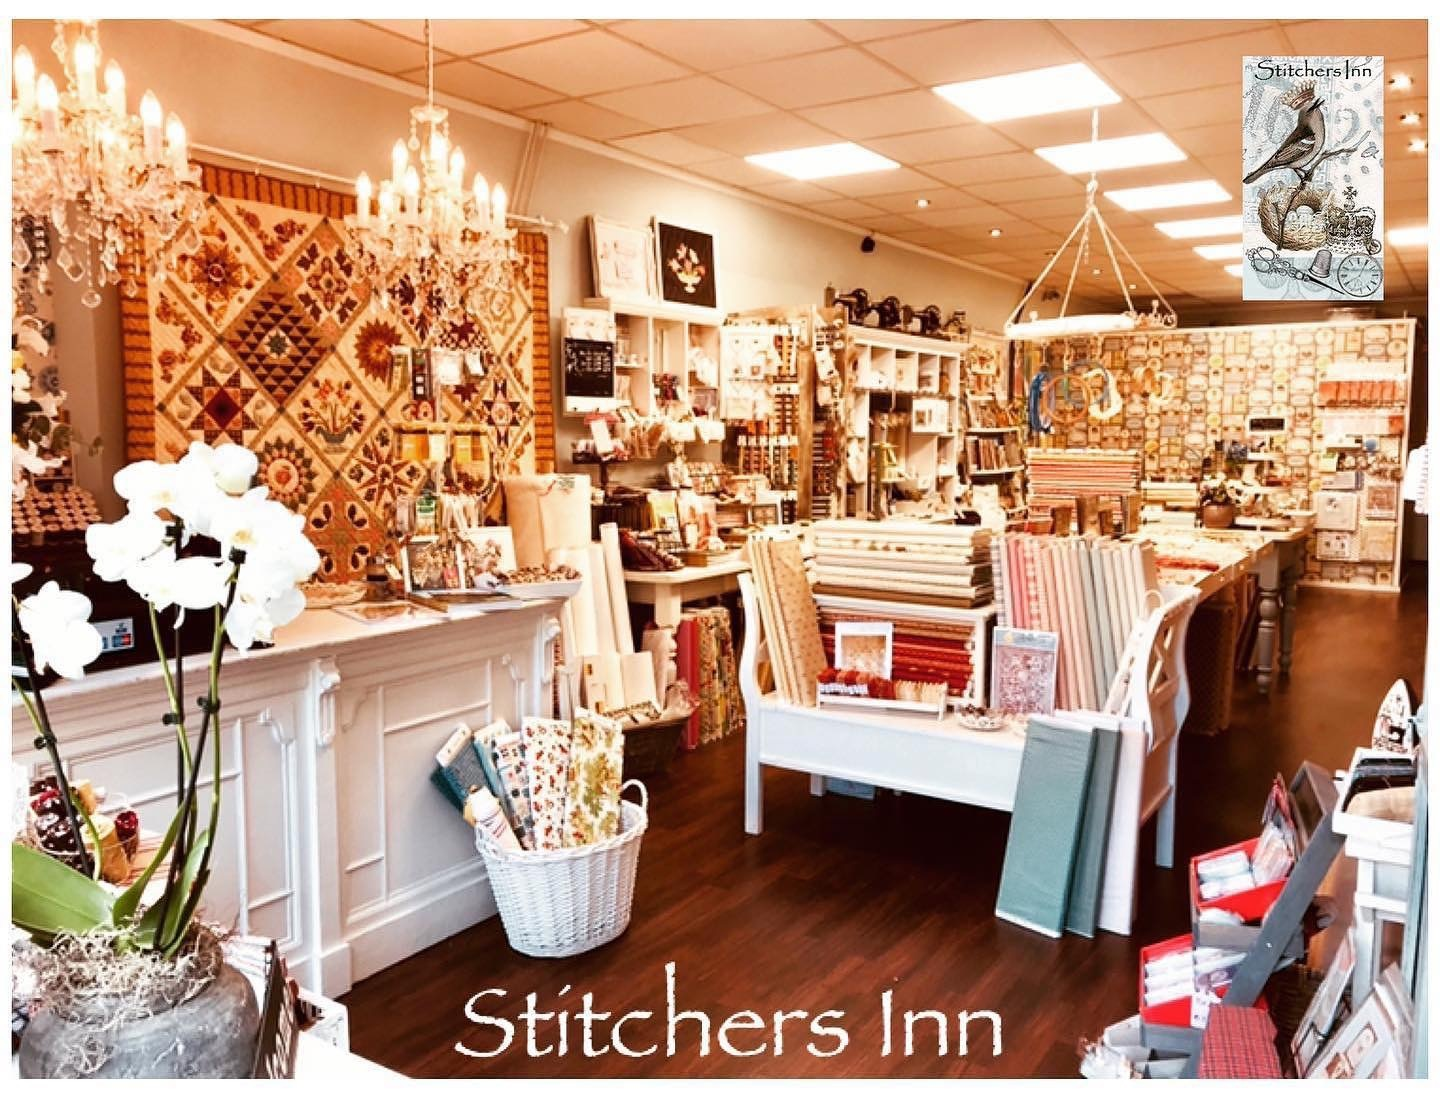 Stitchers Inn